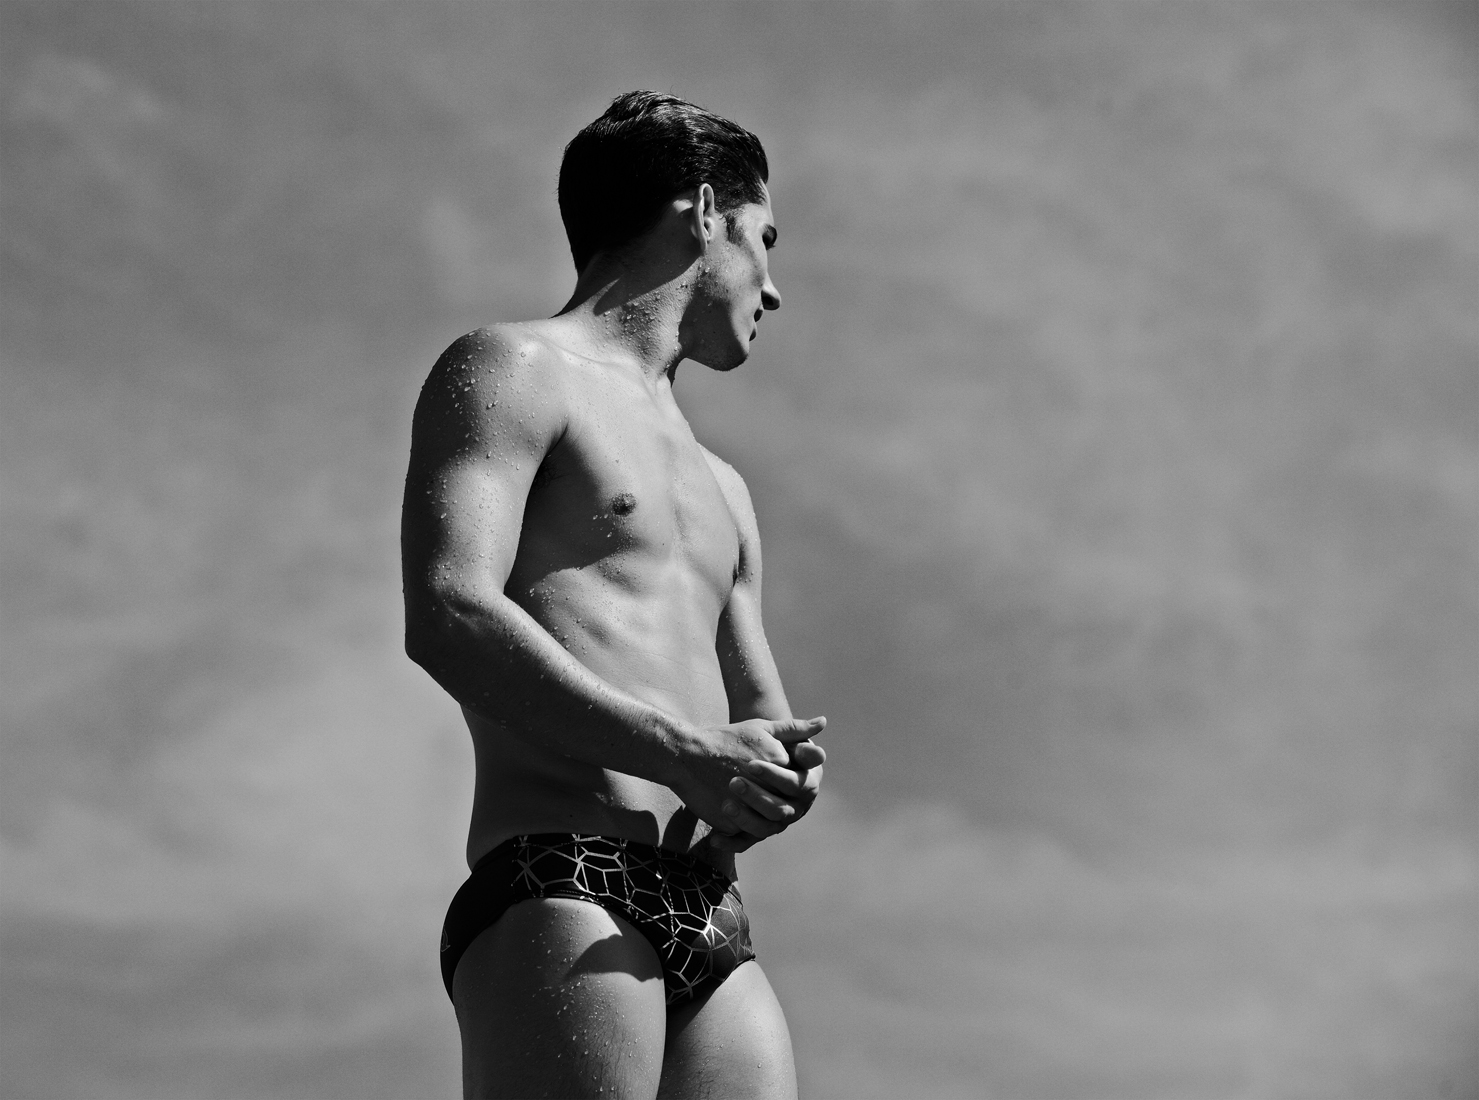 Olympic Diver speedo